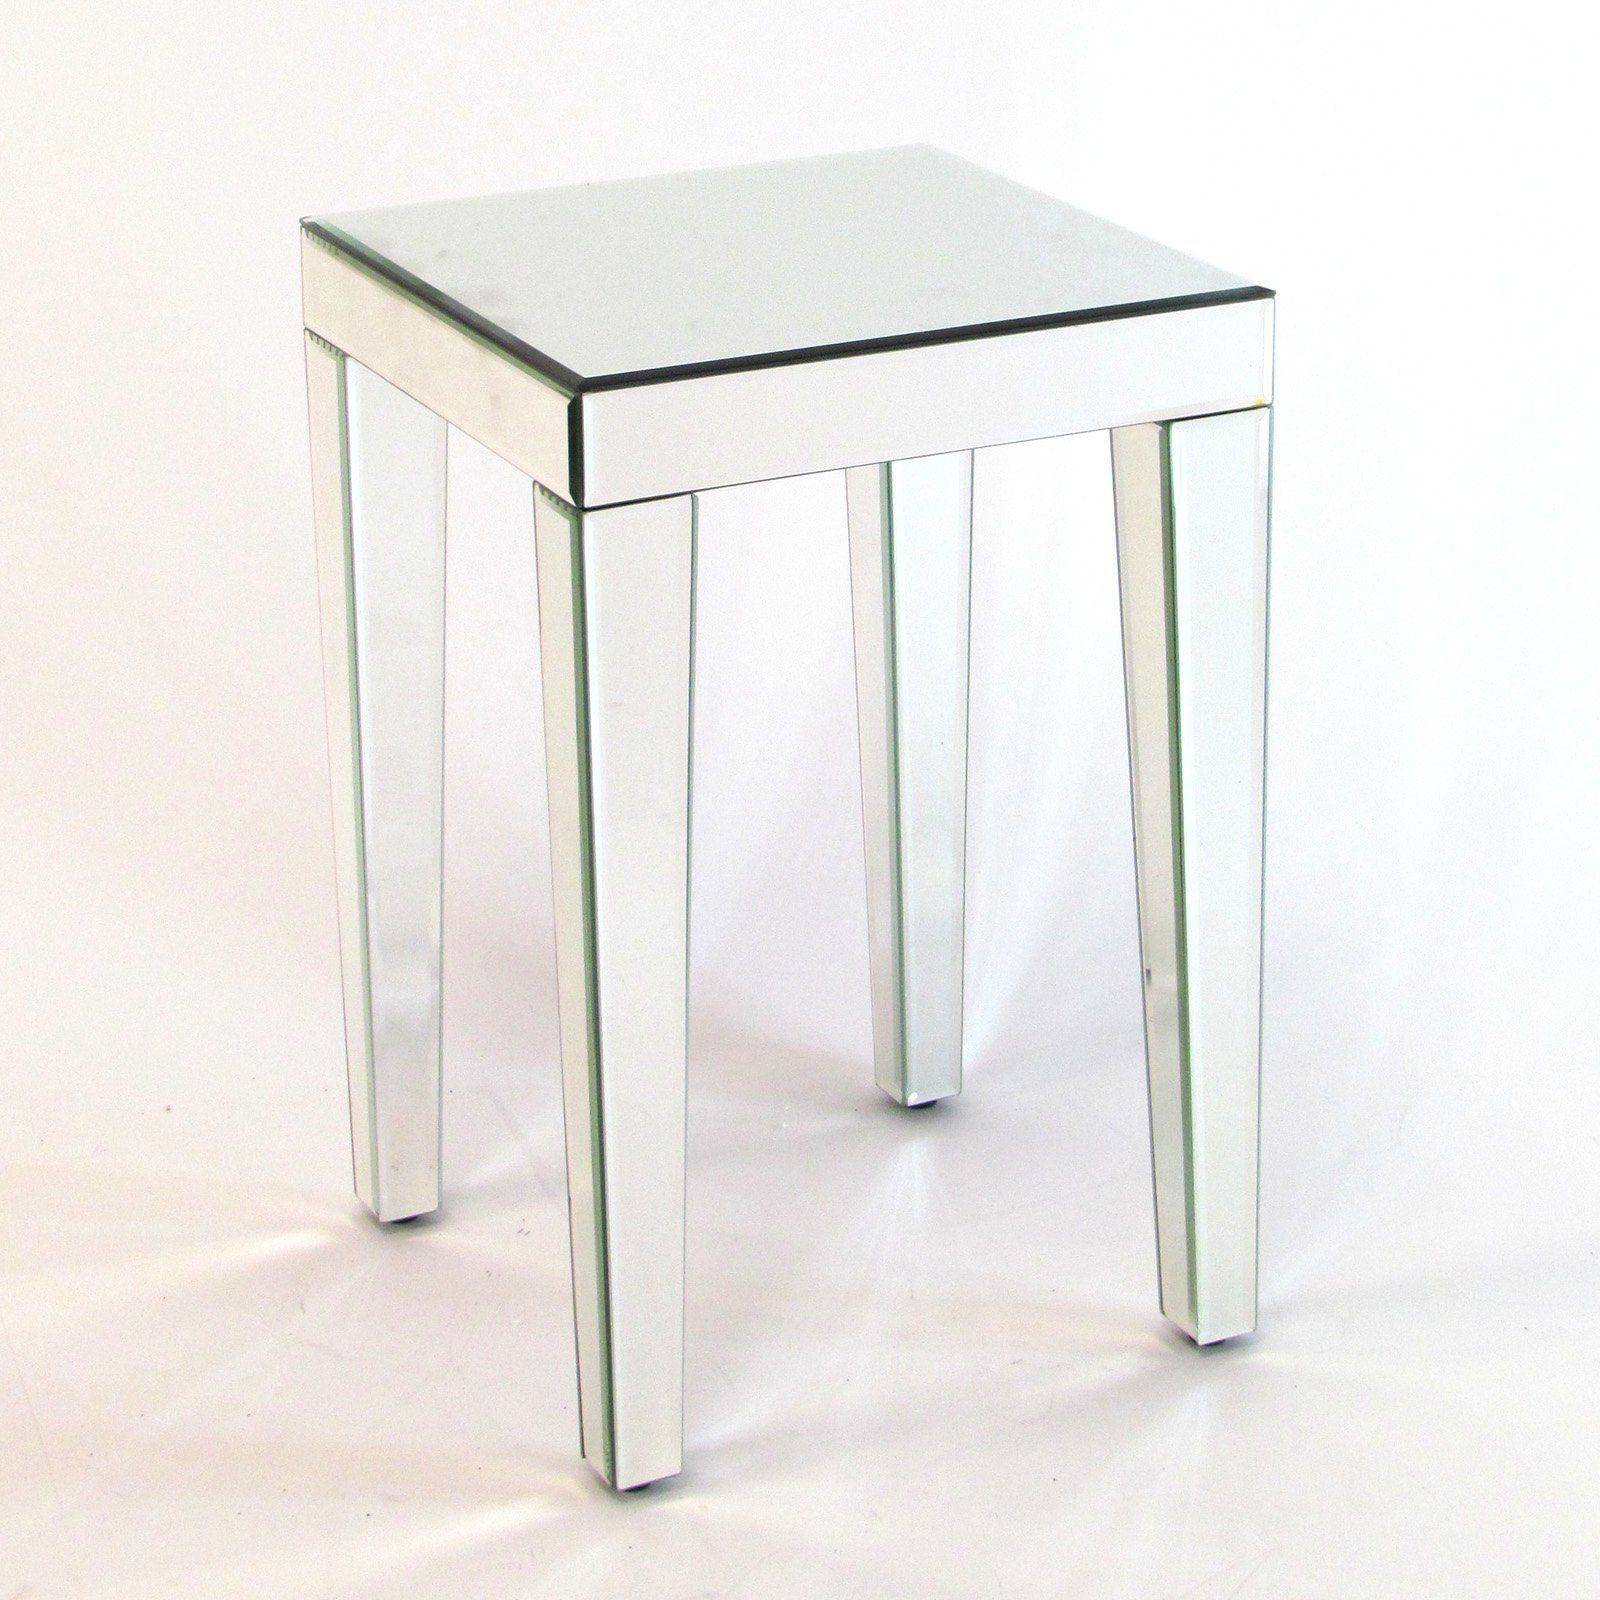 wayborn omega low mirrored nightstand bedroom design mackenzie accent table from mid century lighting antique drop leaf end tall slim lamps small round covers green cabinet tables